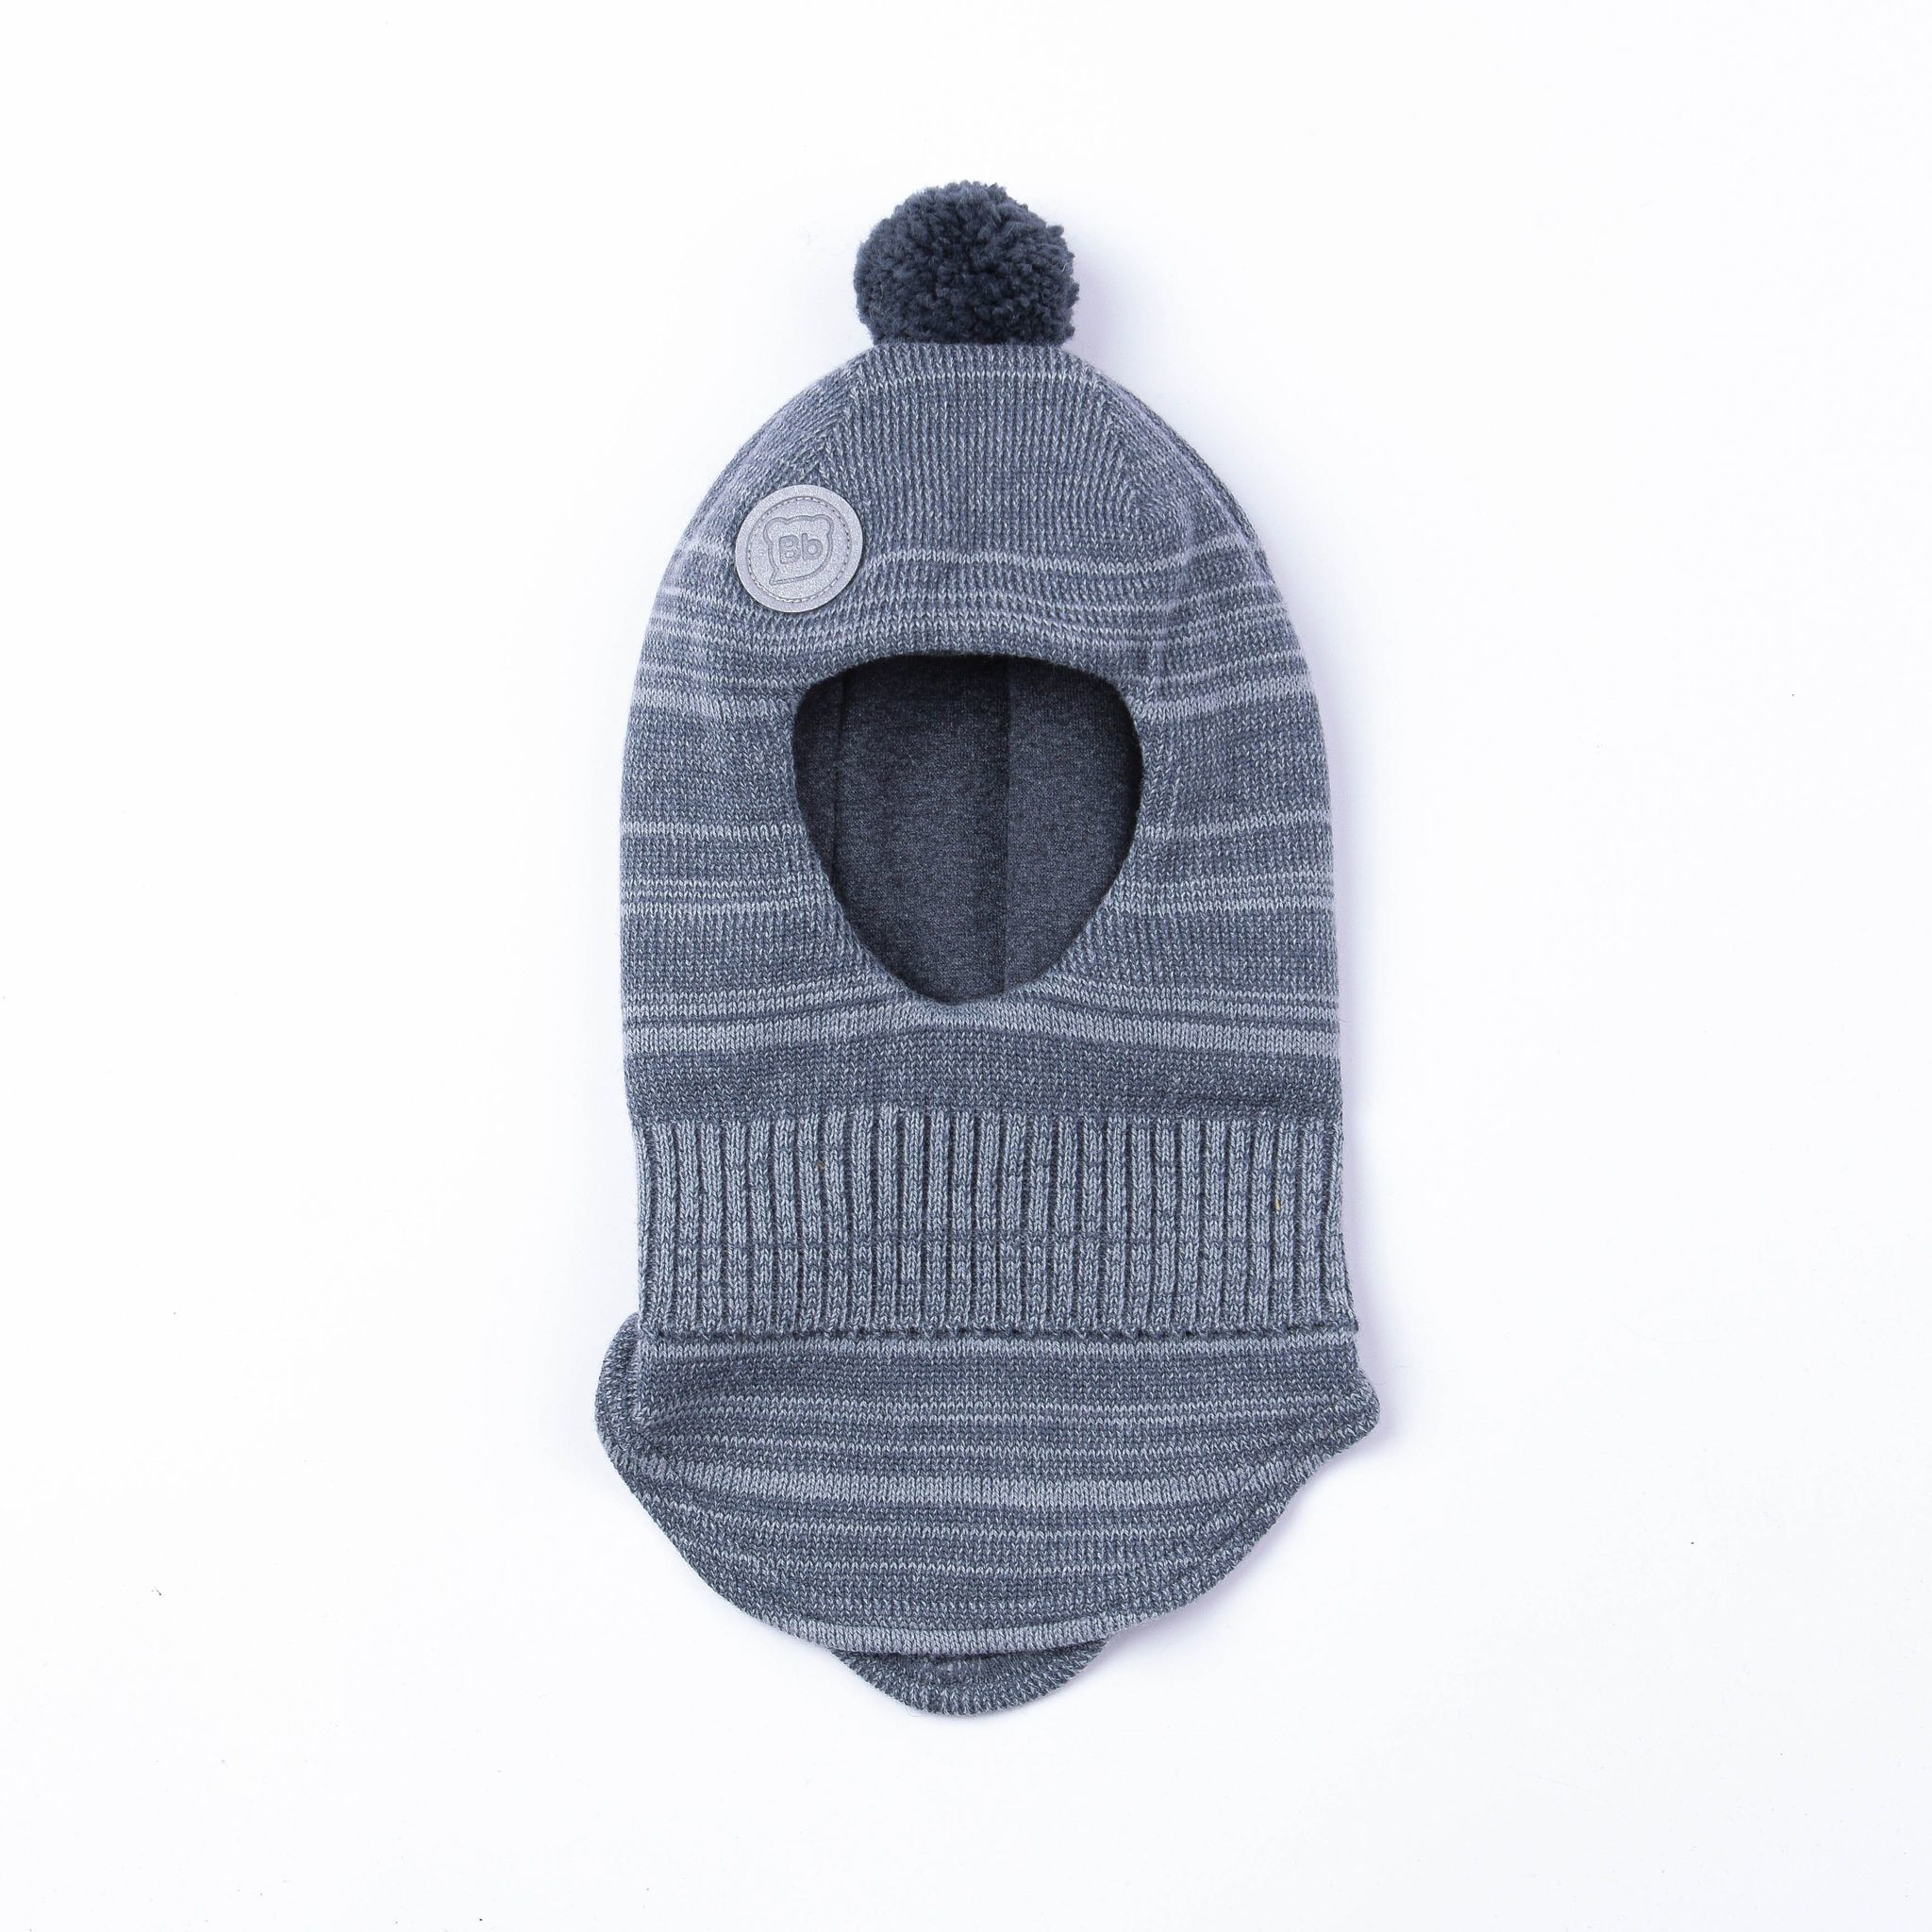 Winter knitted balaclava with pompon - Graphite Melange